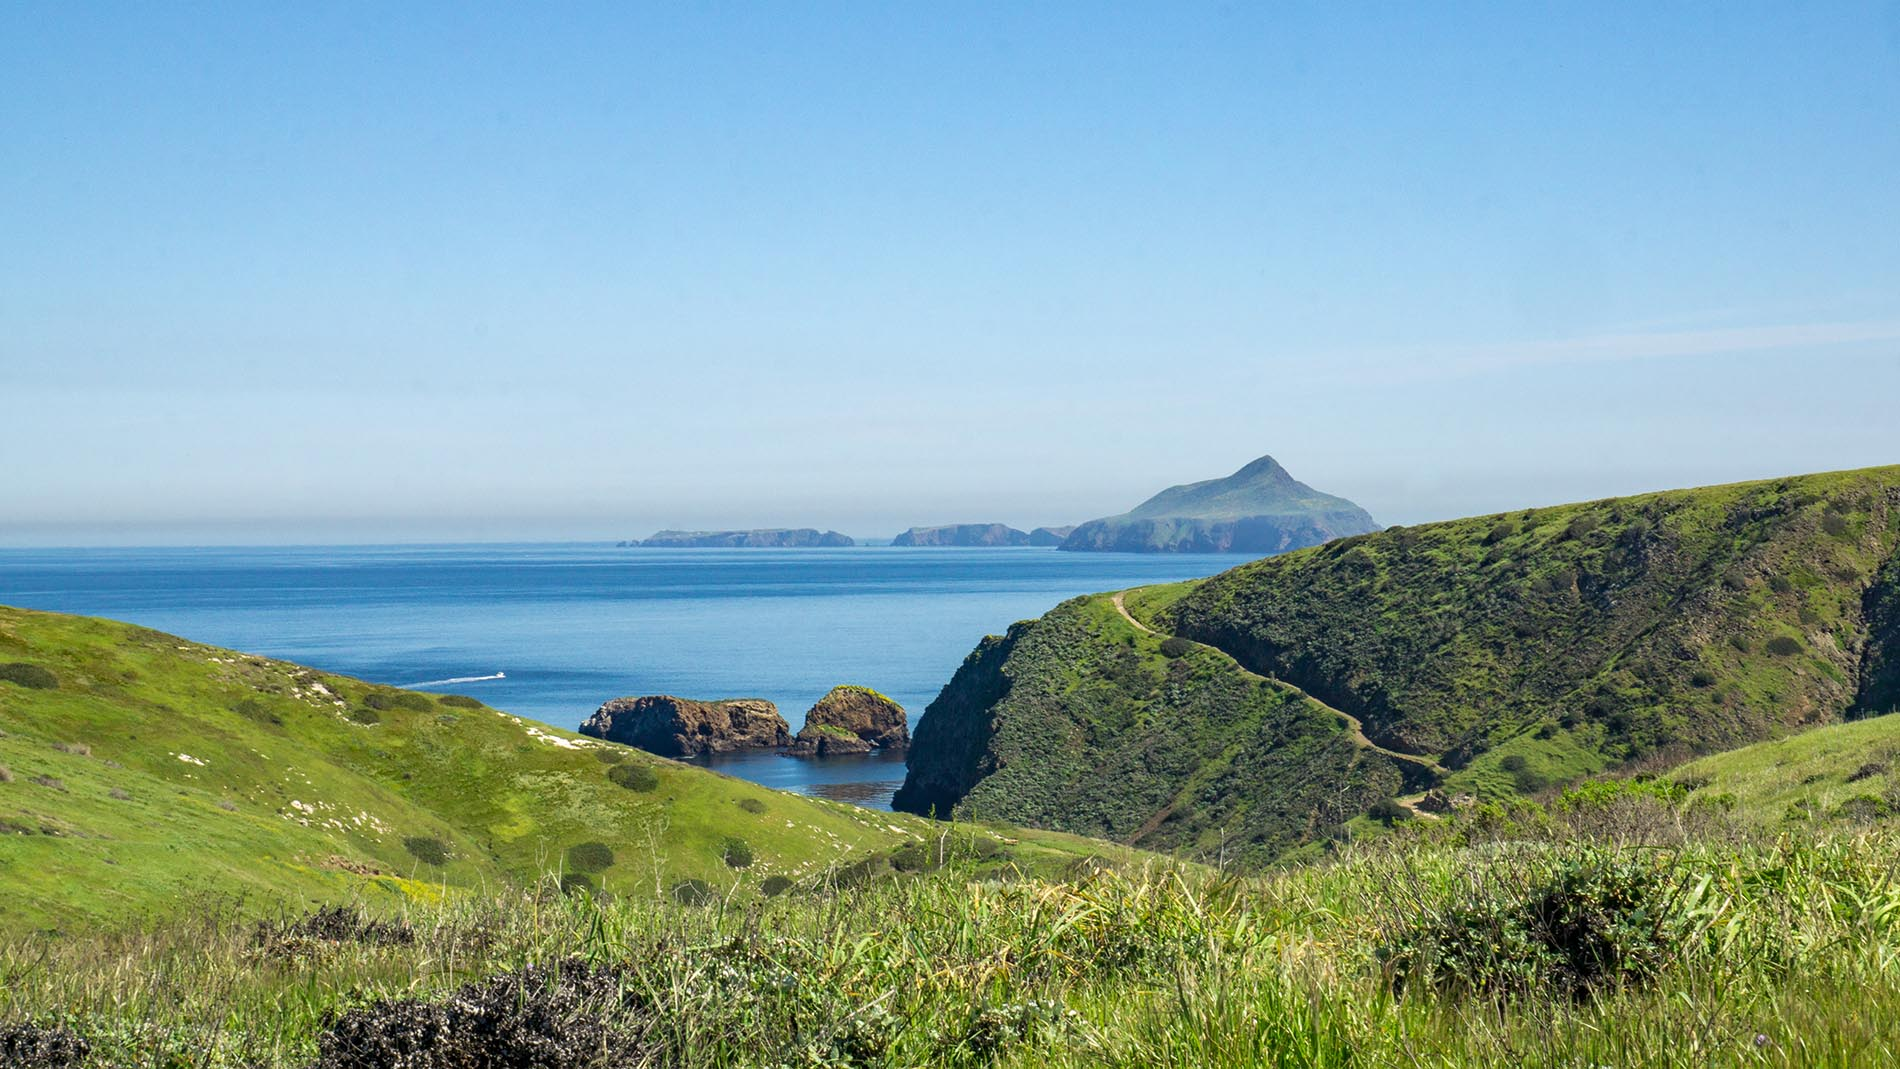 Sweeping views of the channel islands hiking trails and the Pacific Ocean.